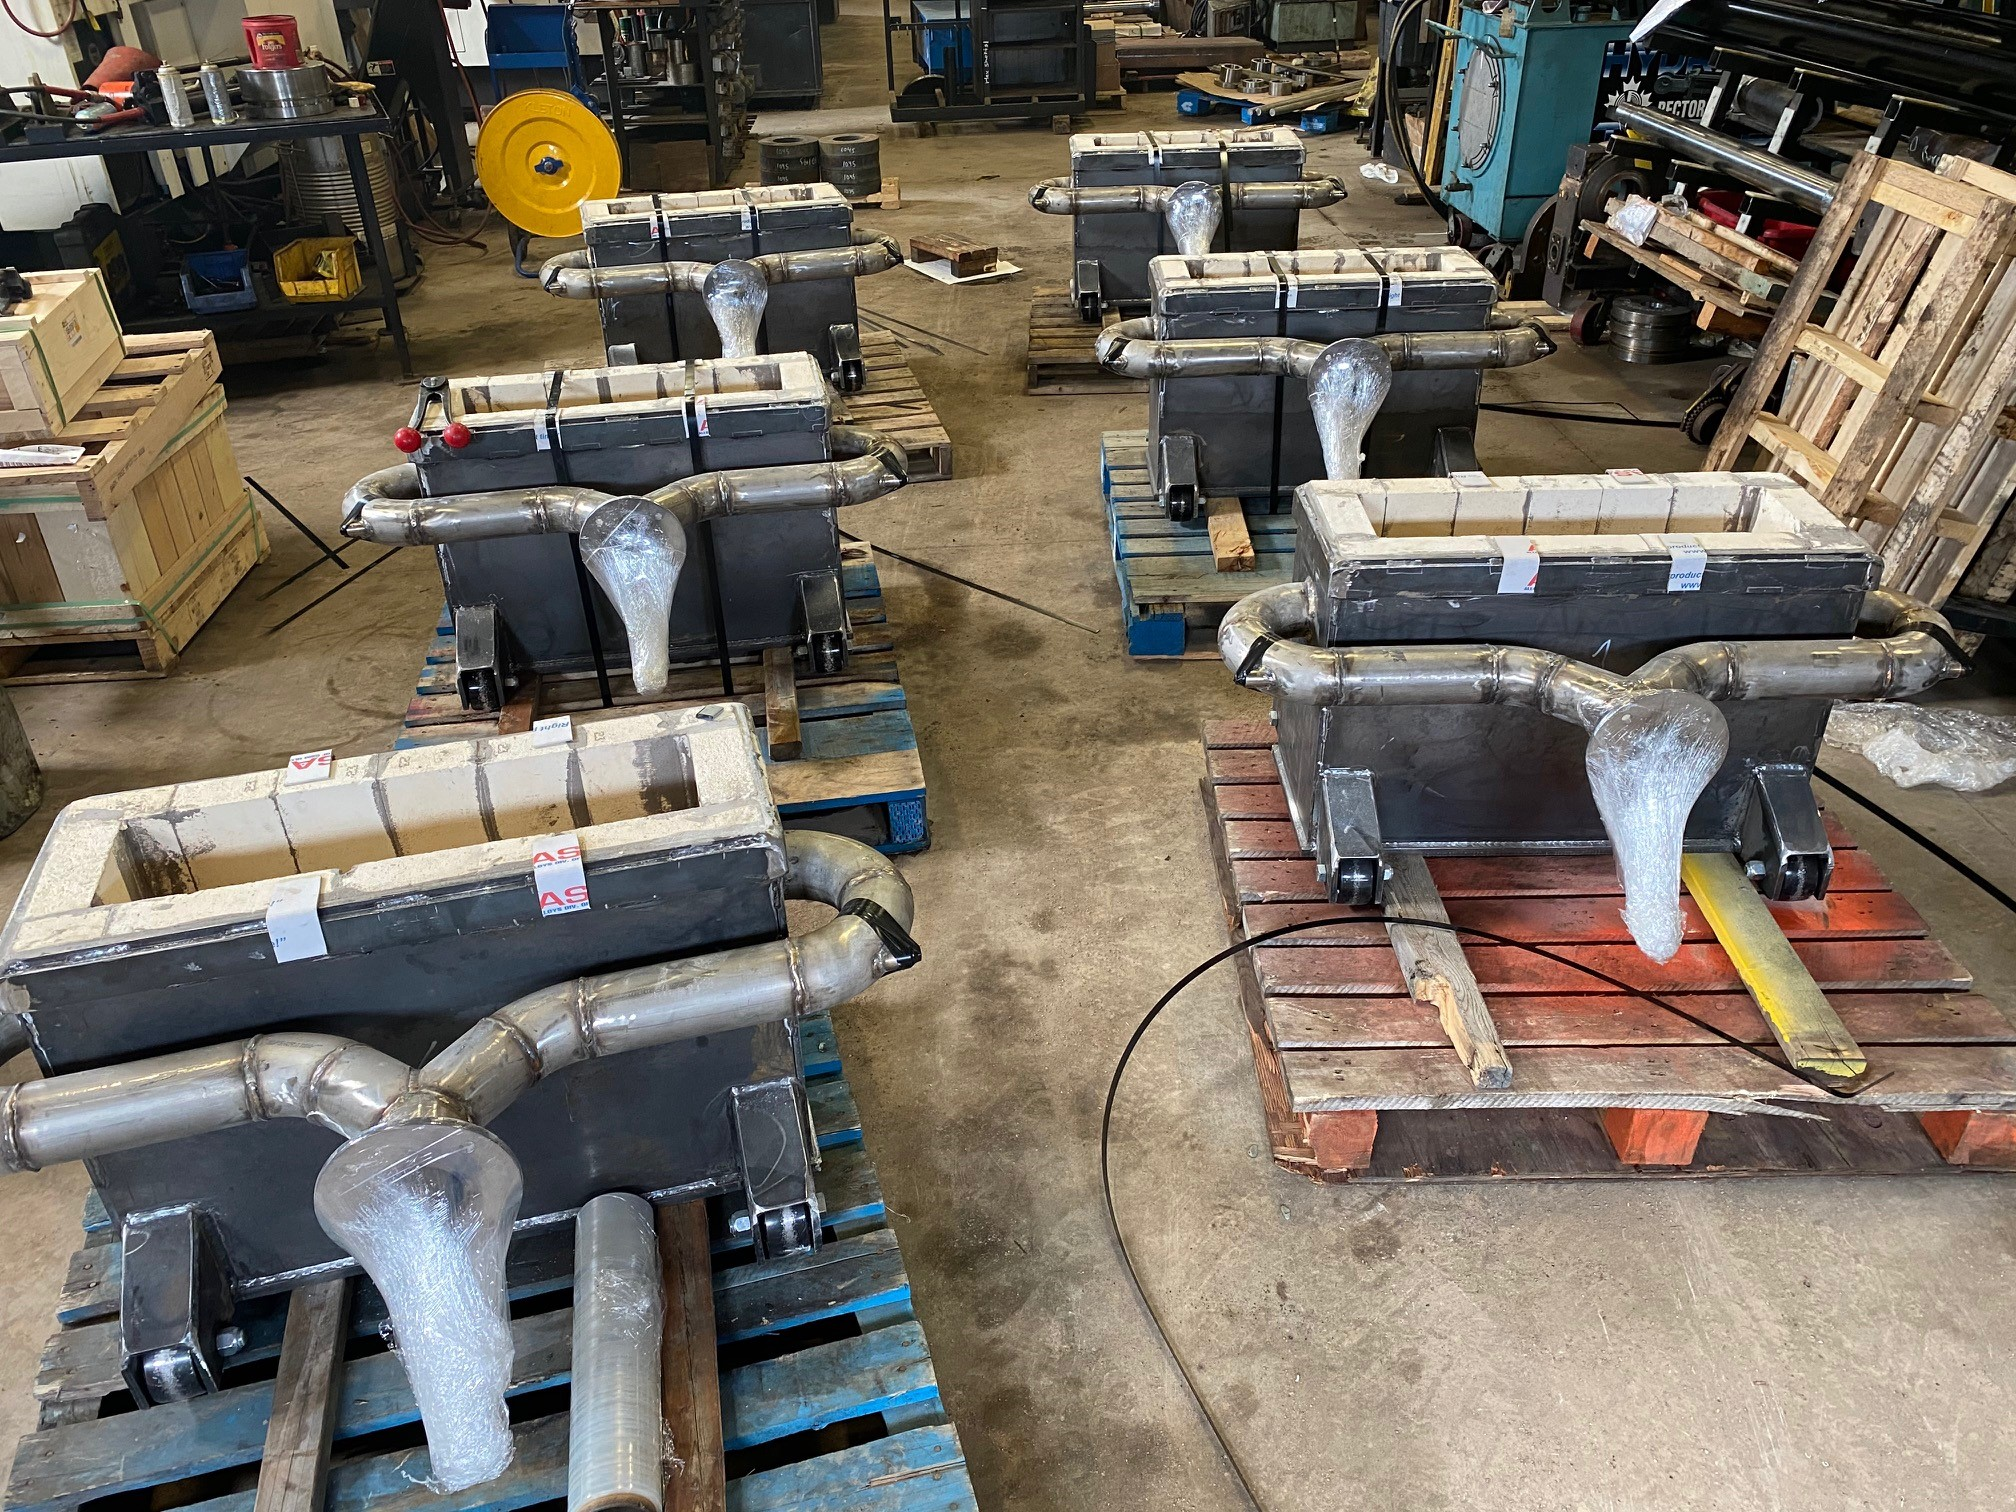 Rector builds lined preheater boxes for the steel industry following ISO 9001-2015 guidelines